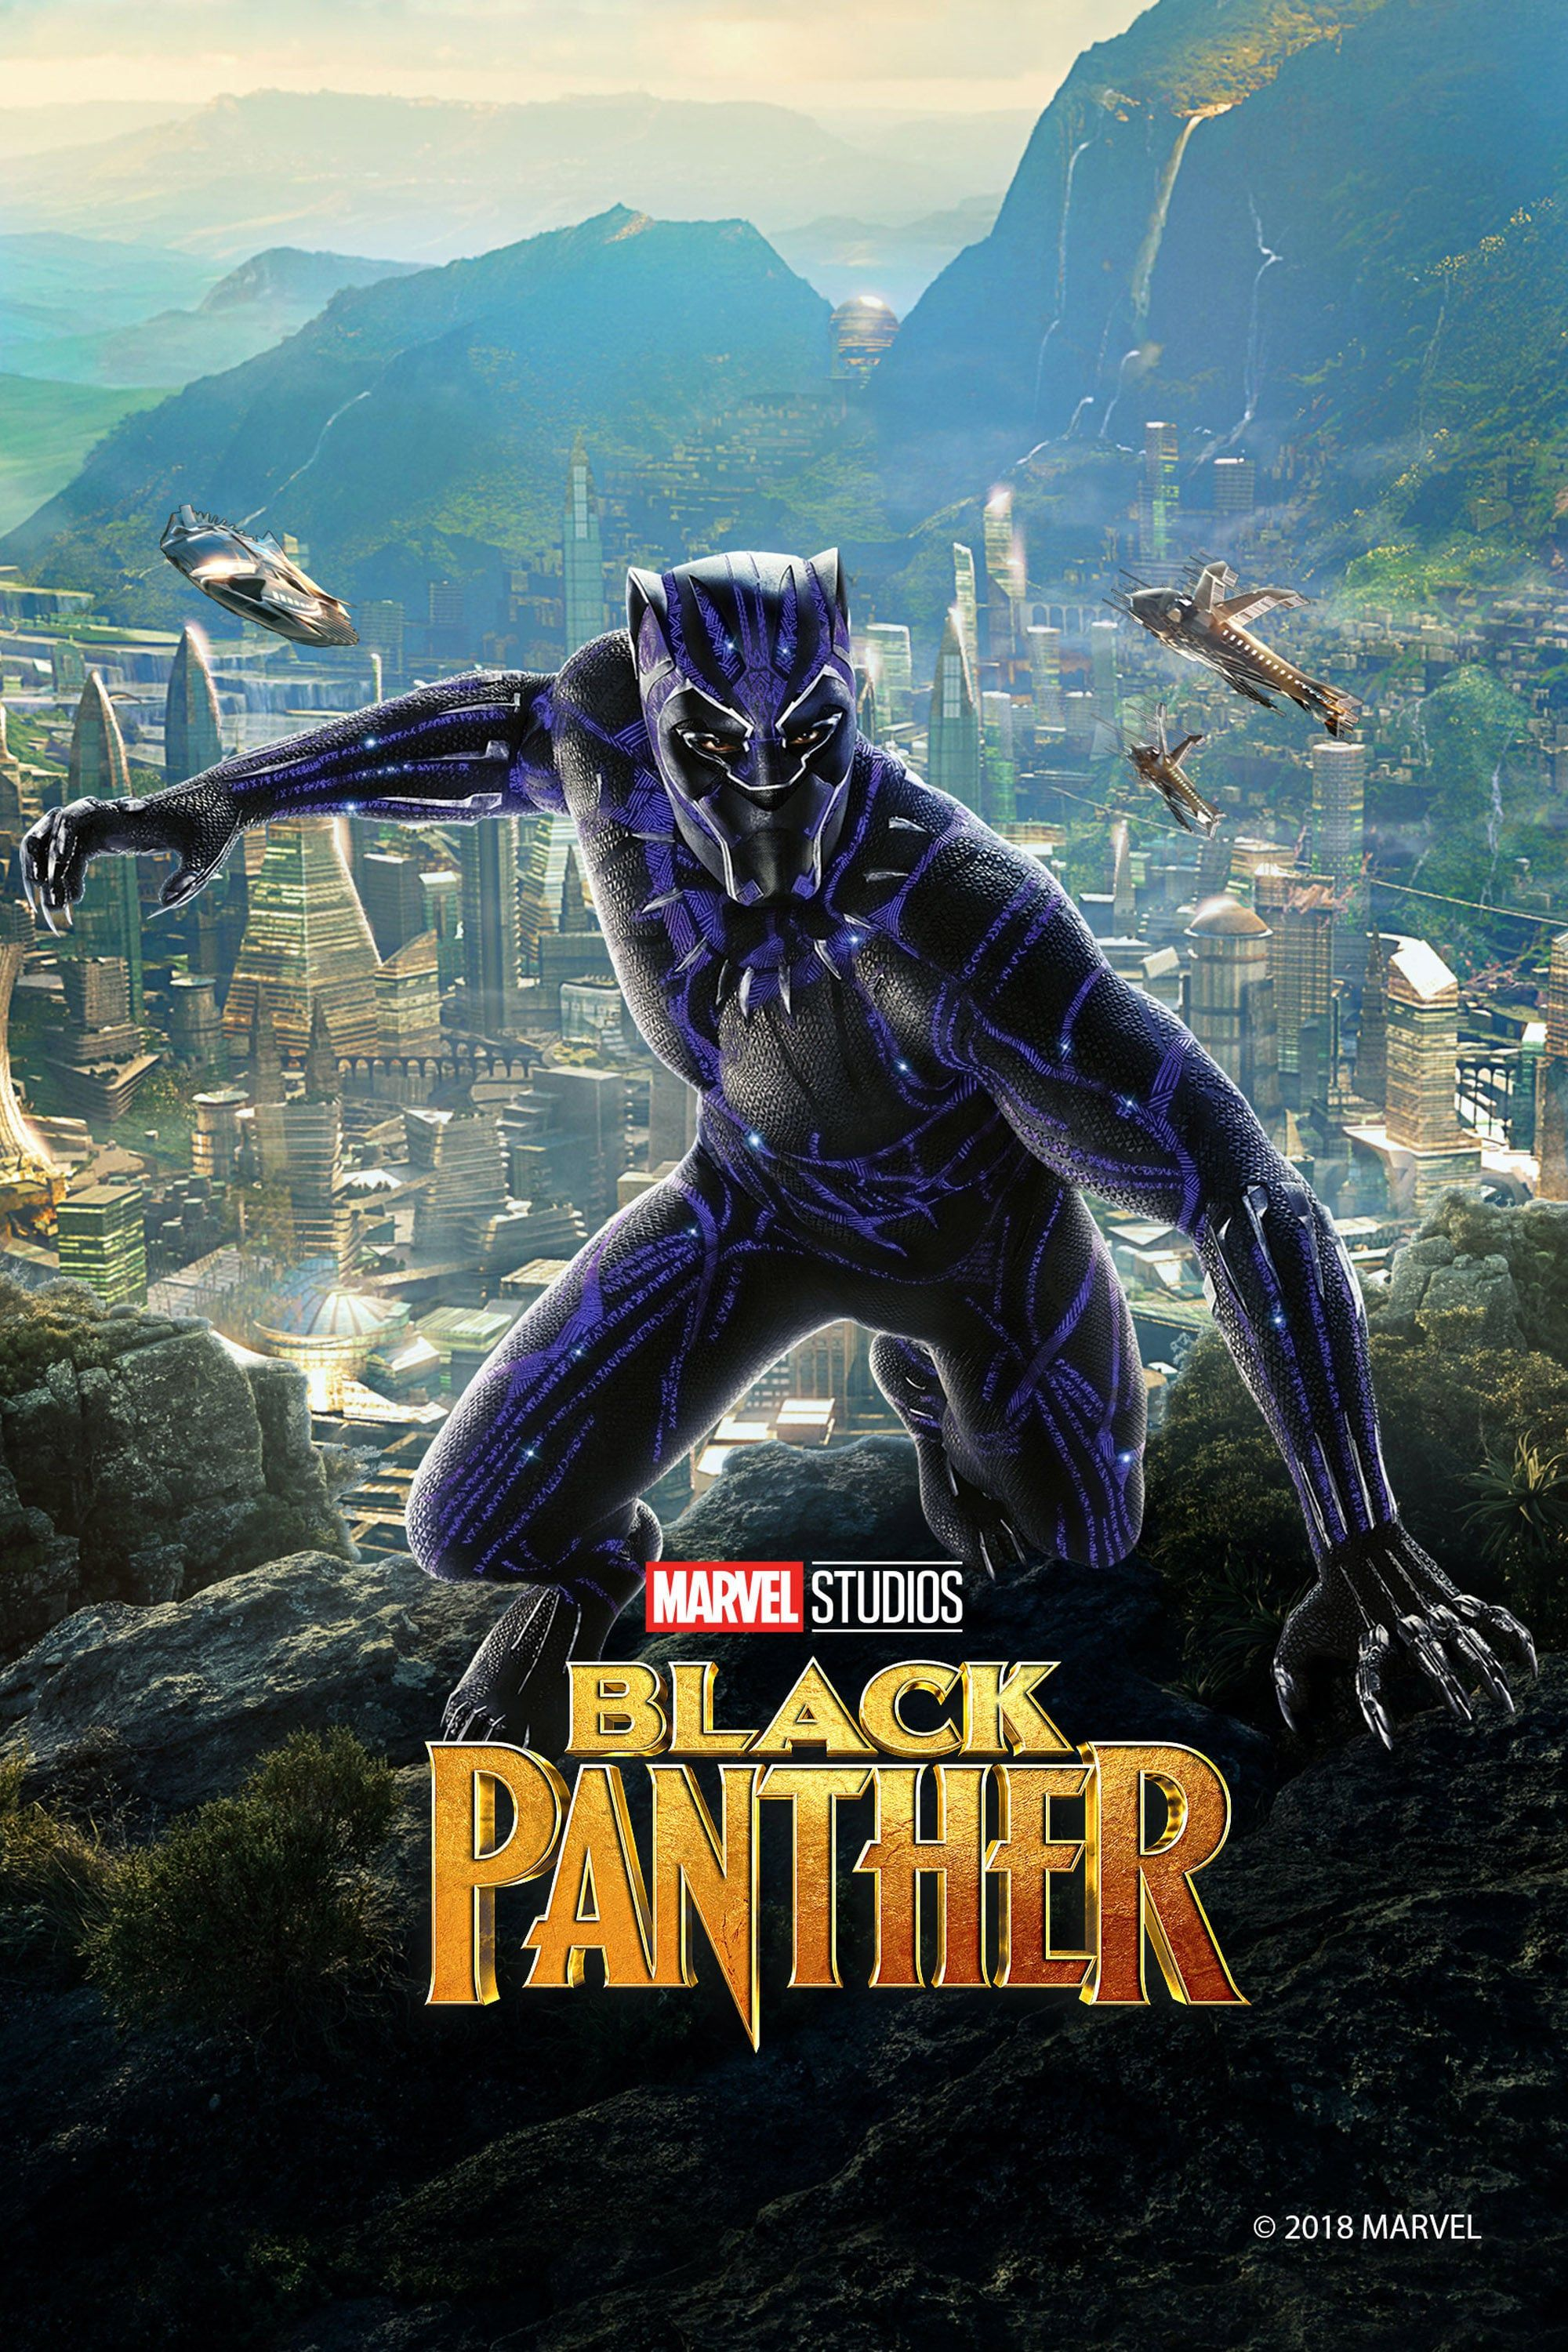 Watch Black Panther 2018 Full Movie Hd Quality Click The Picture And Follow The Ins Peliculas Completas Gratis Ver Peliculas Completas Peliculas Completas